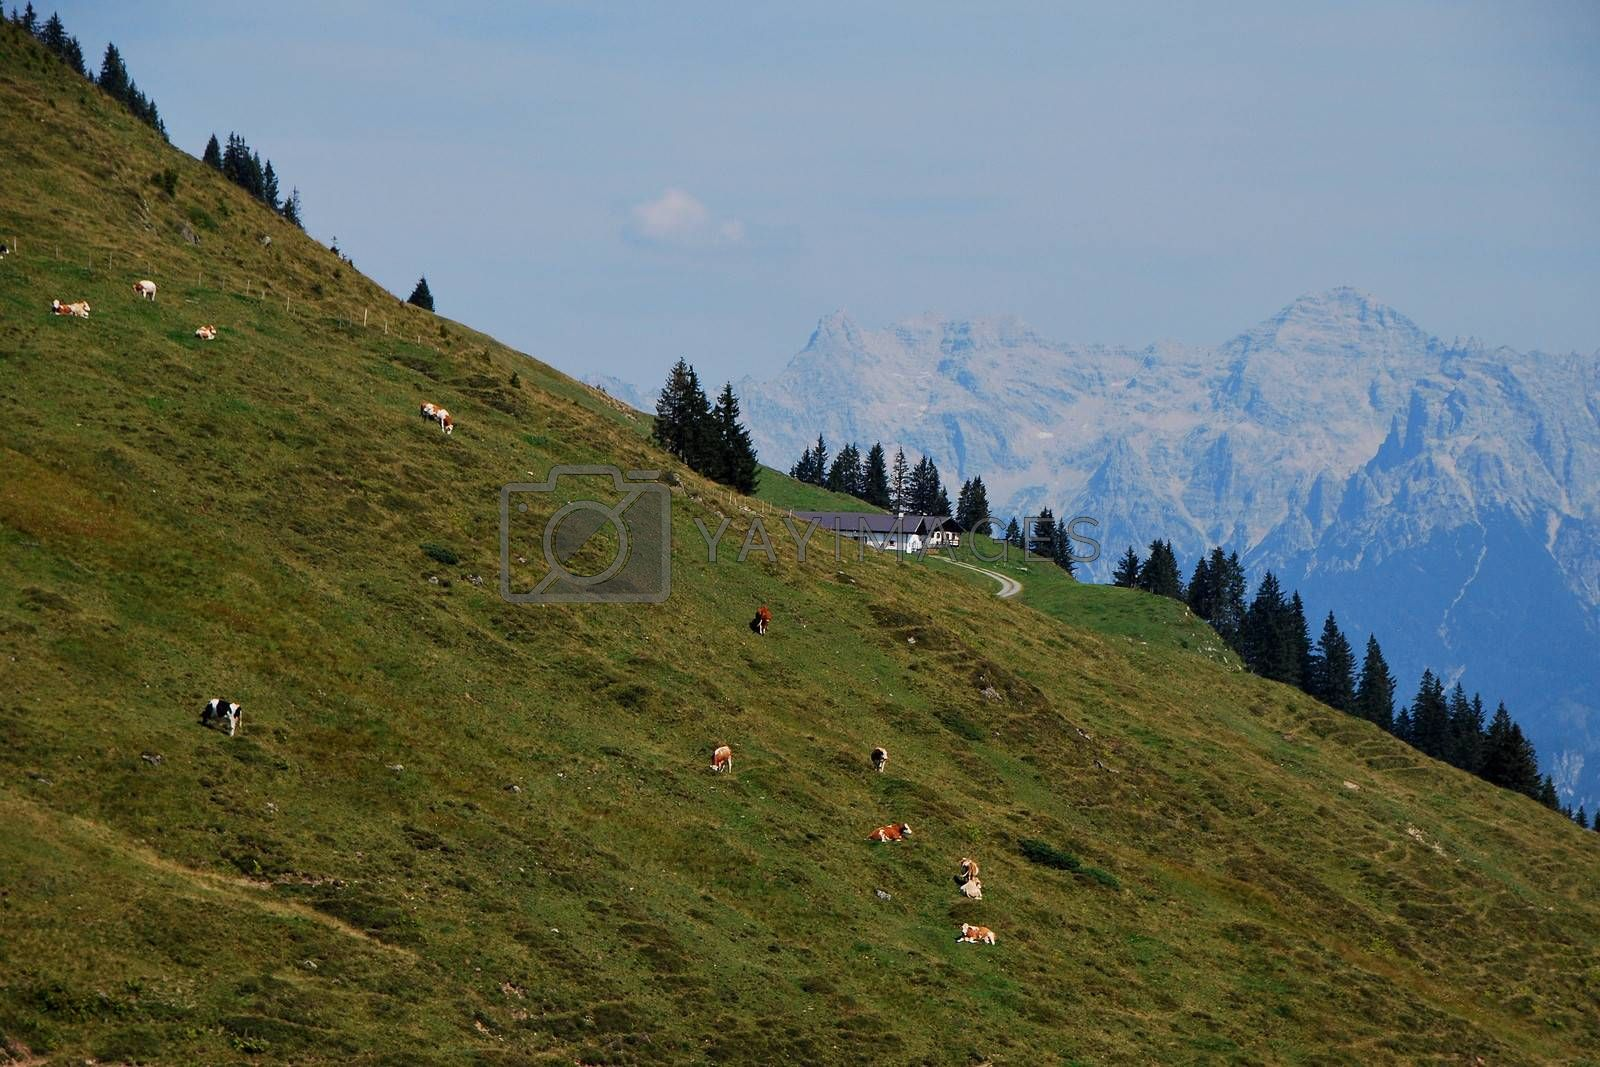 many cows on an alpine pasture in the mountains